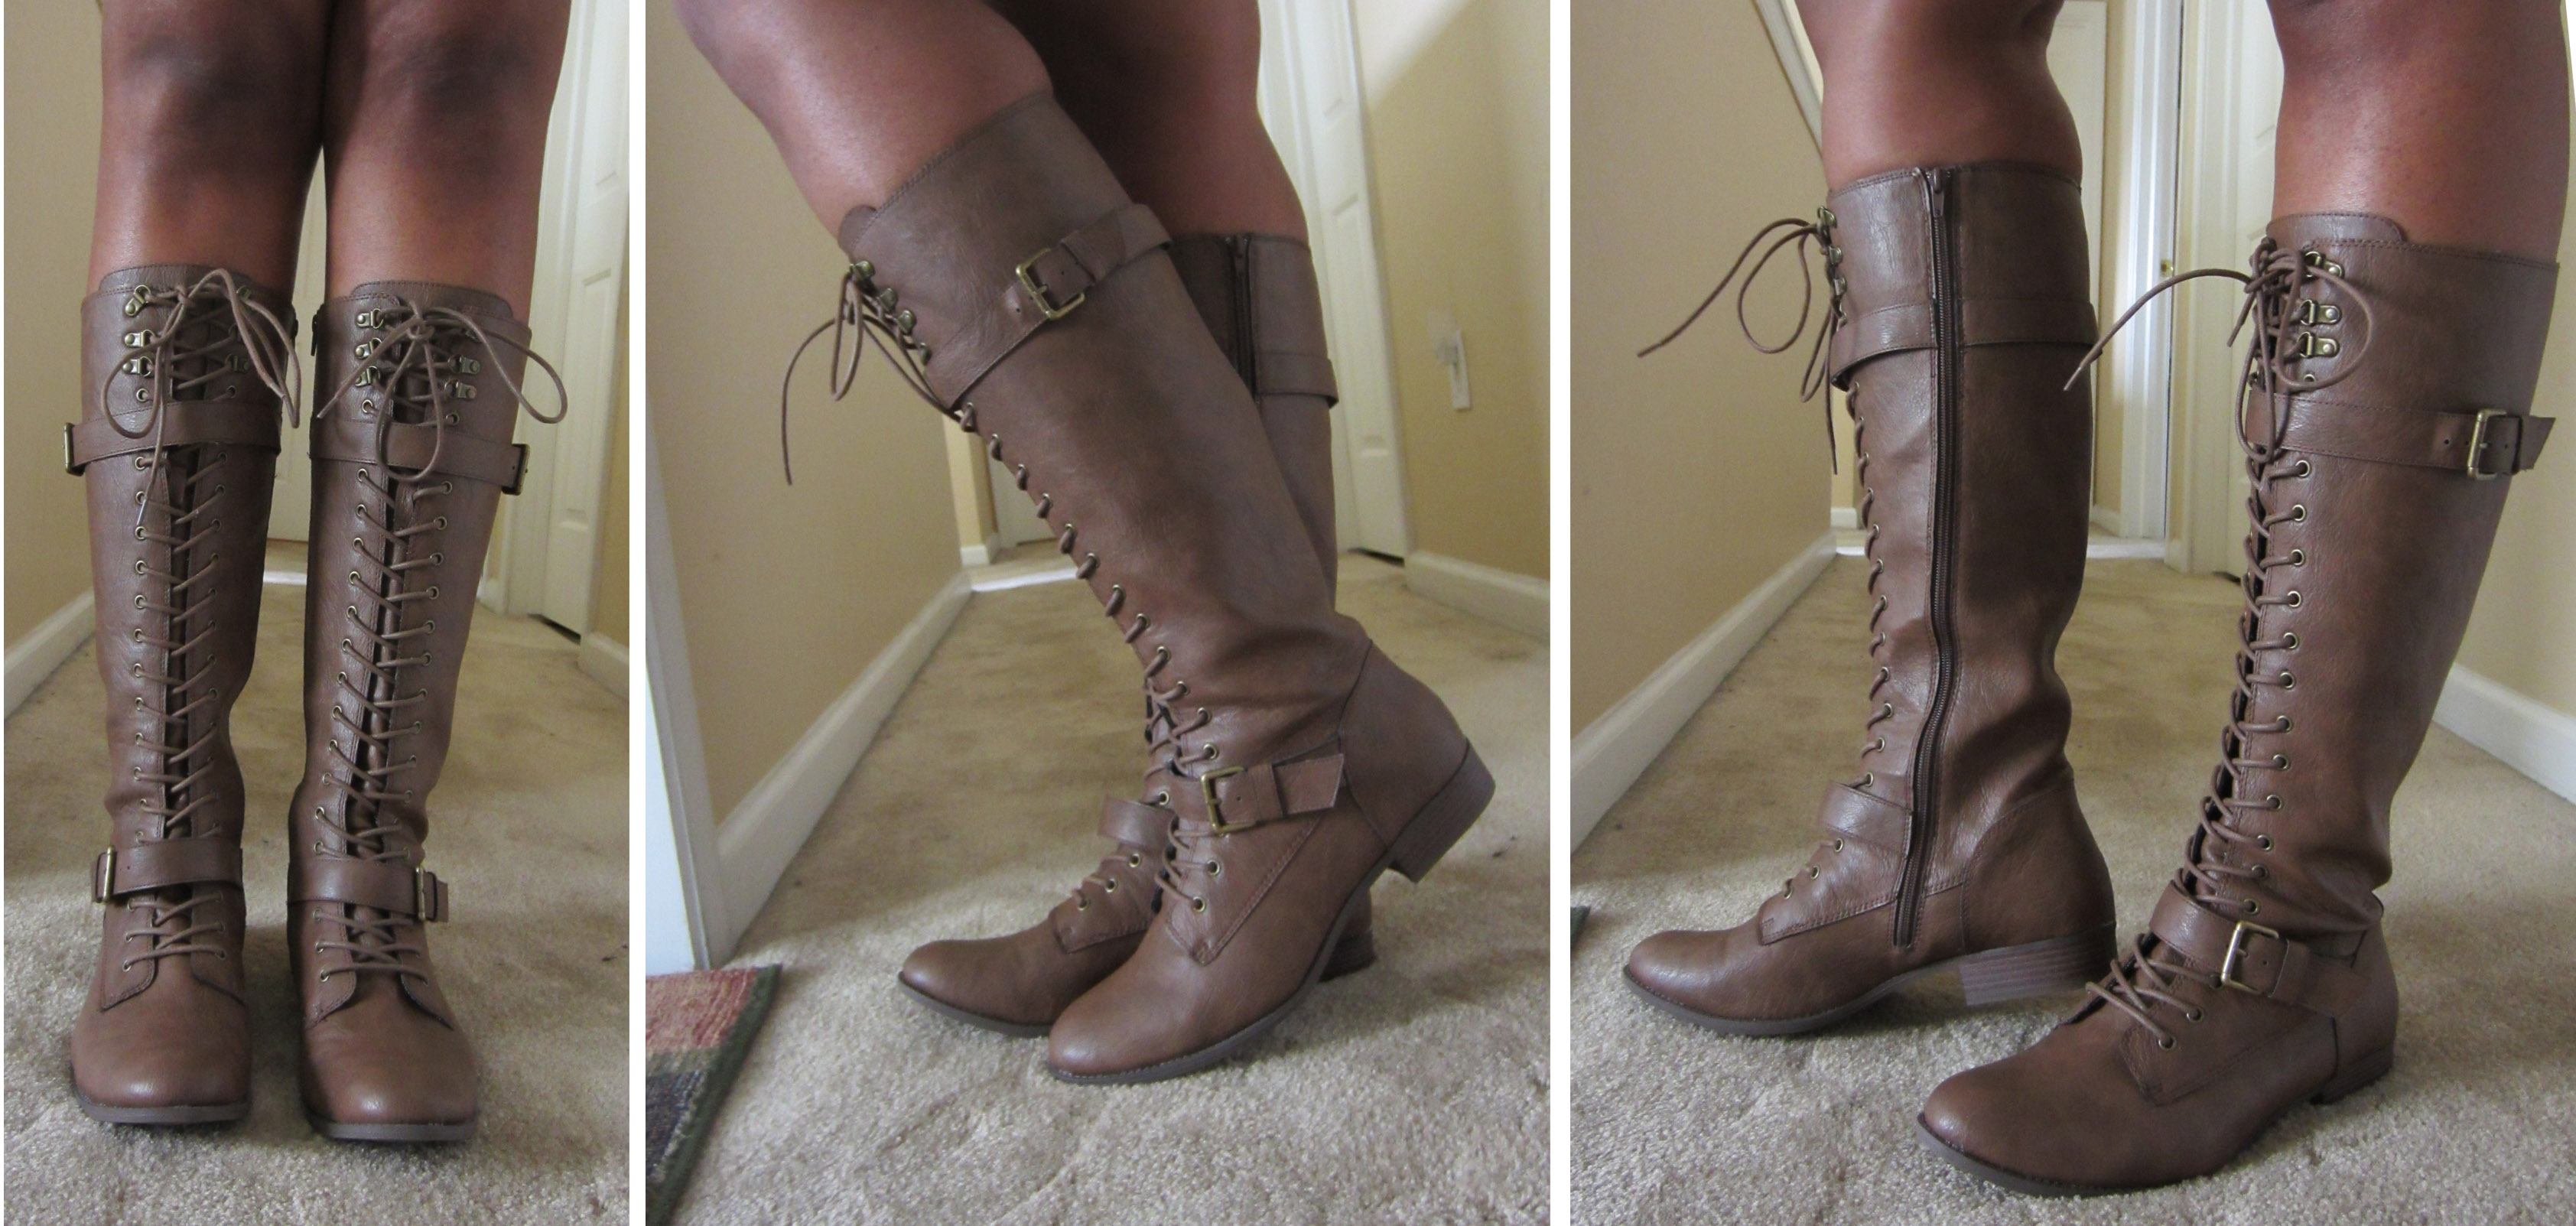 New shoes: Barefoot Tess and Payless